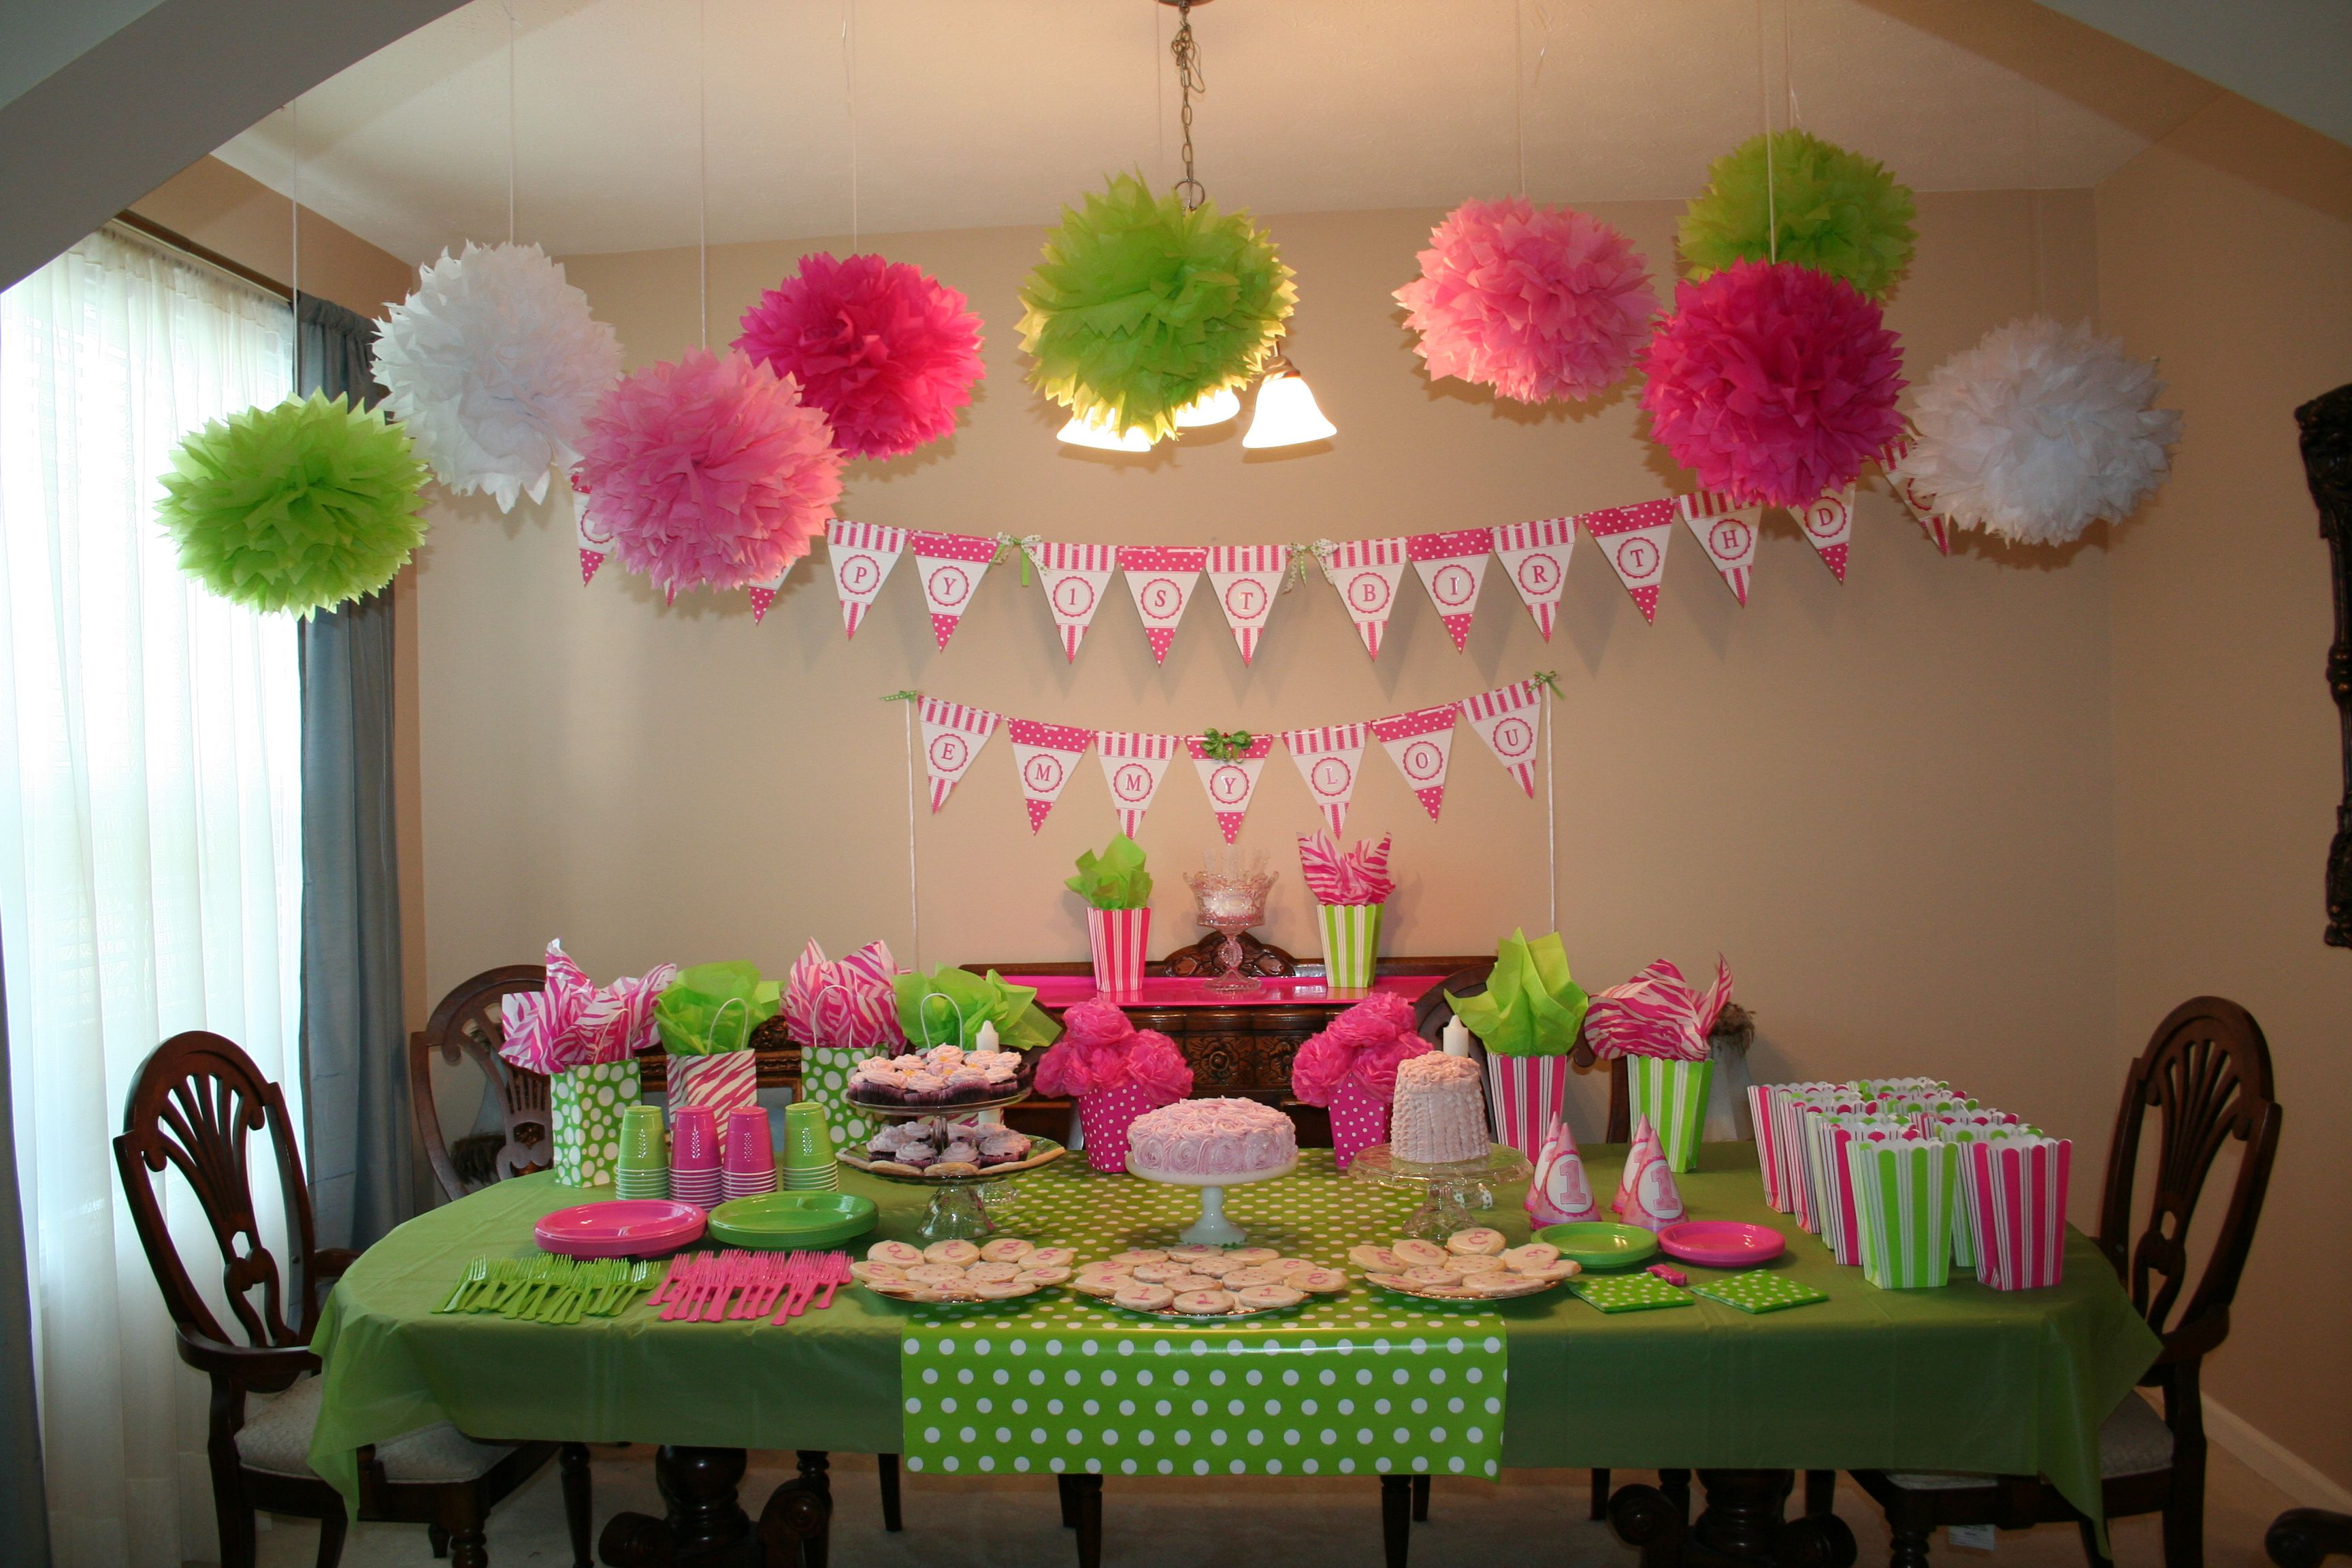 Pink and Green Couture Birthday Party for 1 year old granddaughter